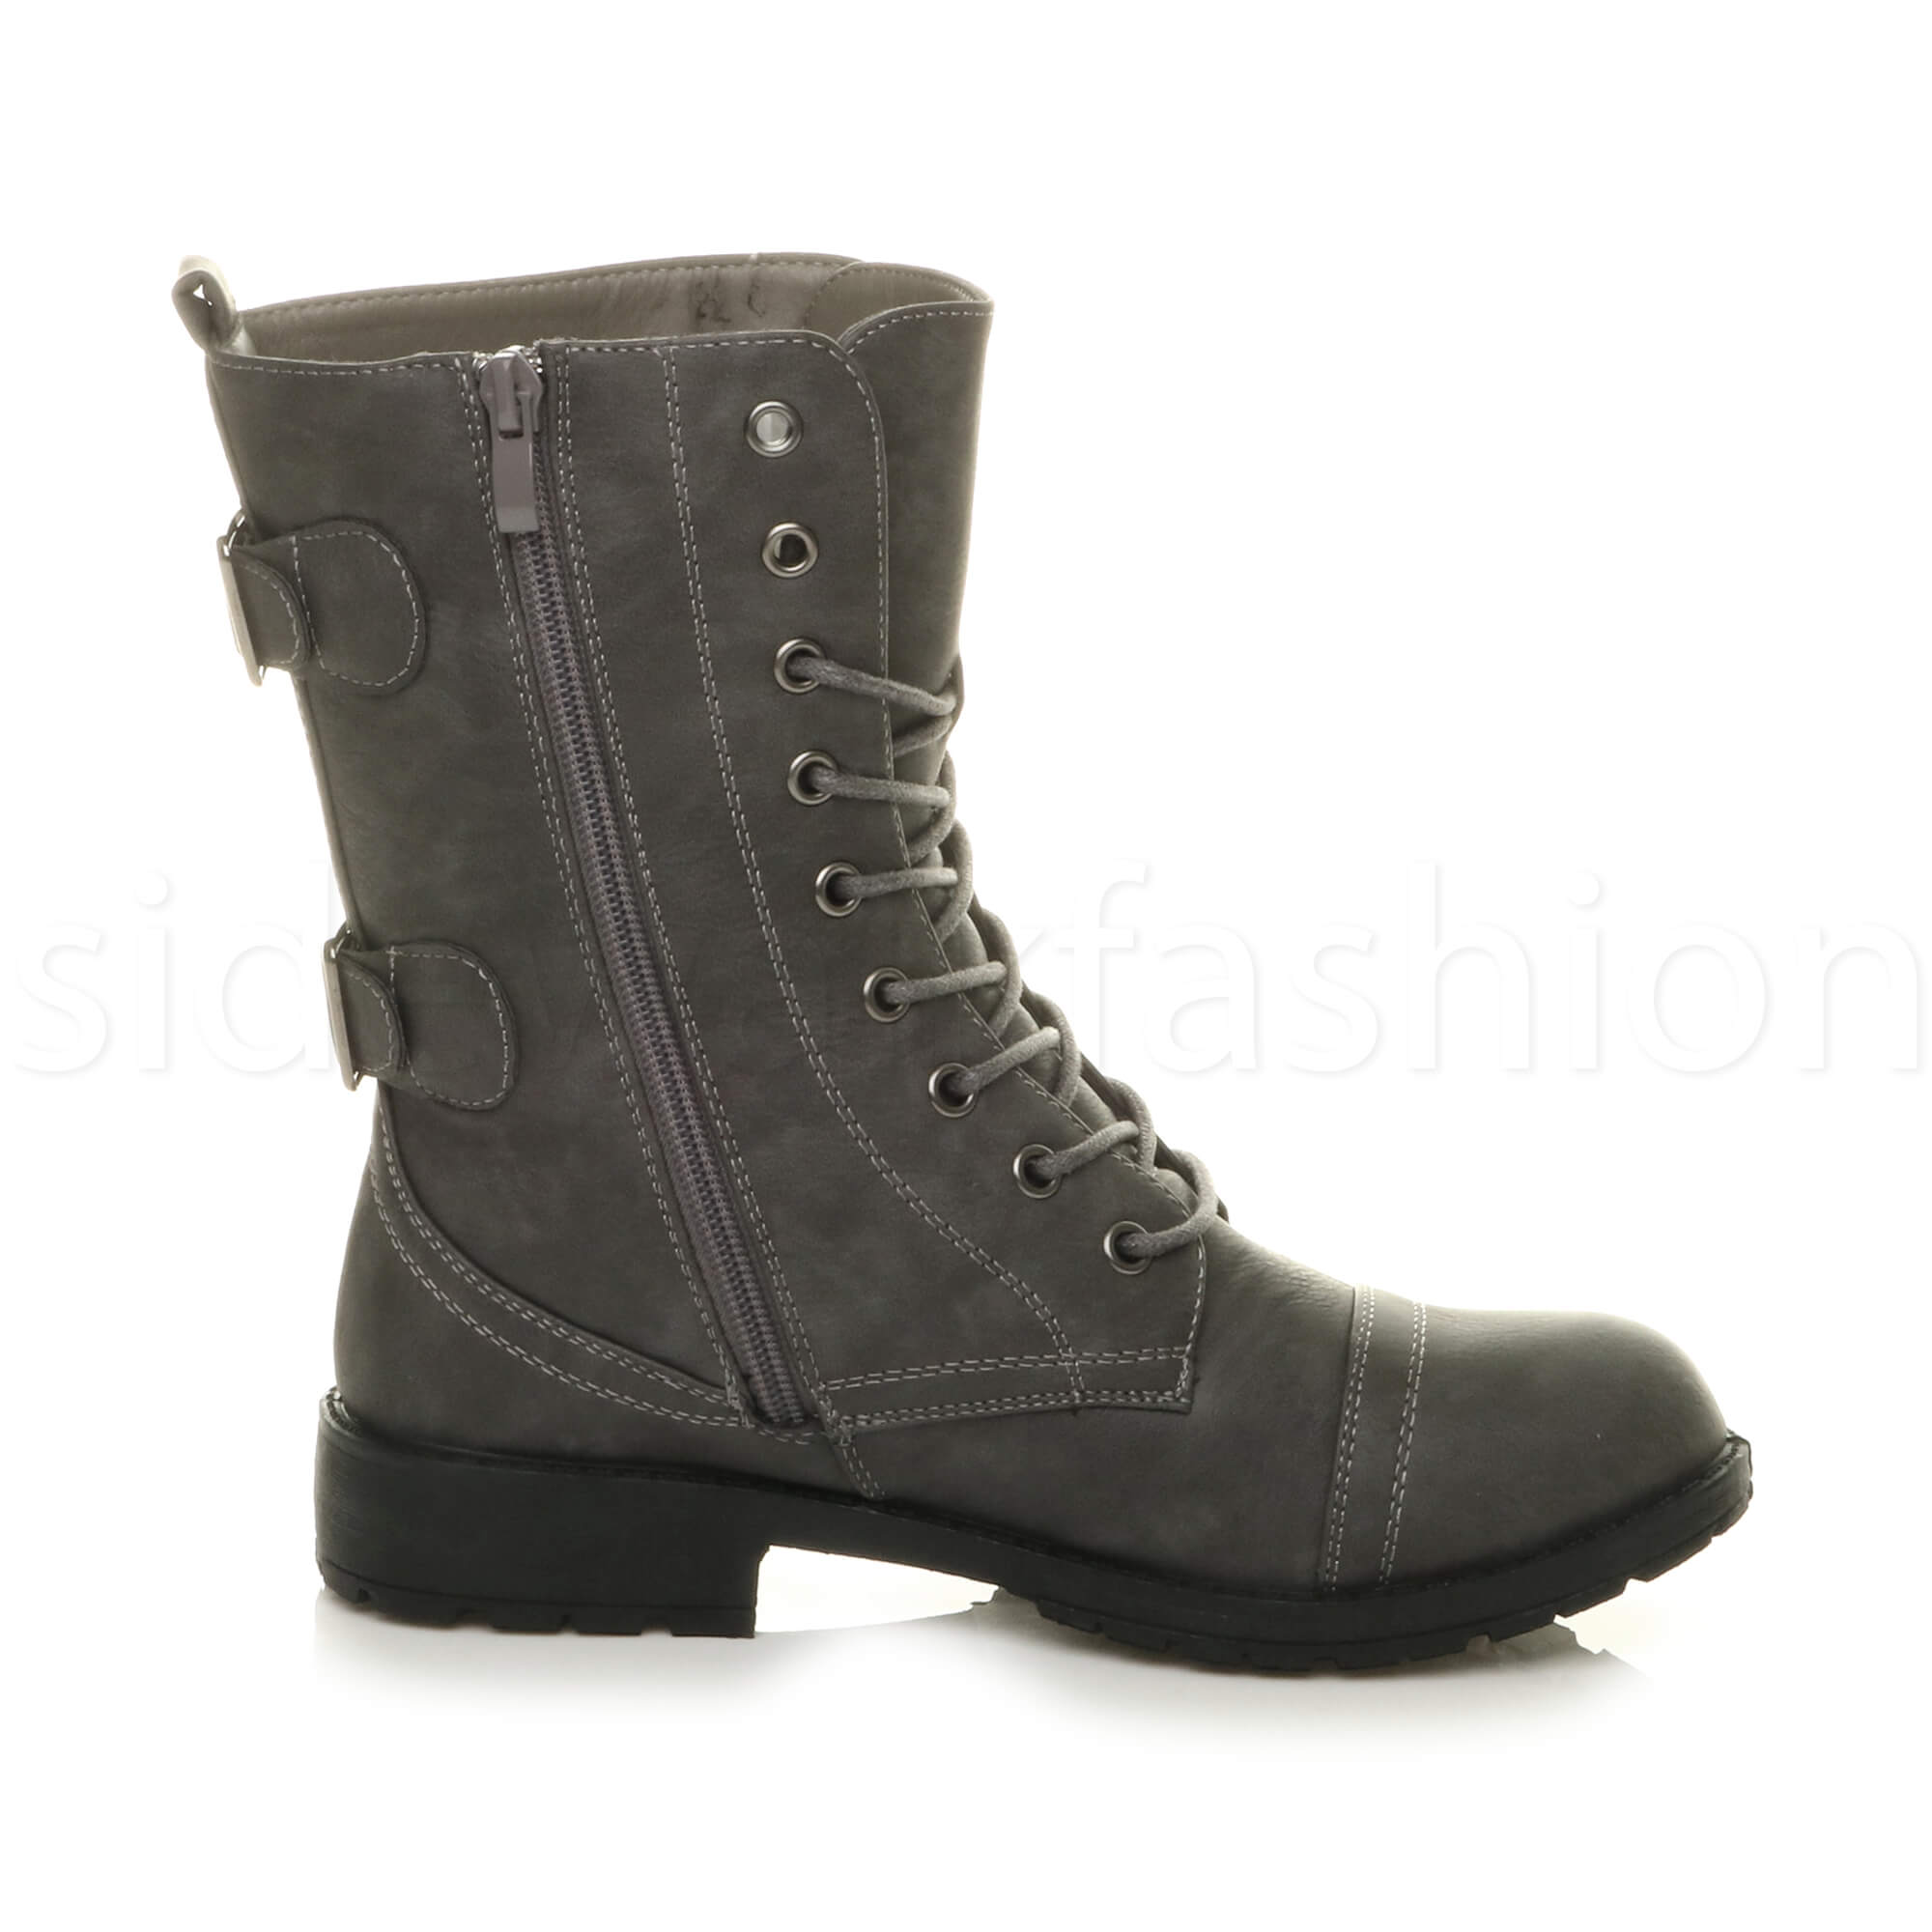 Womens-ladies-low-heel-flat-lace-up-zip-combat-biker-military-ankle-boots-size thumbnail 52